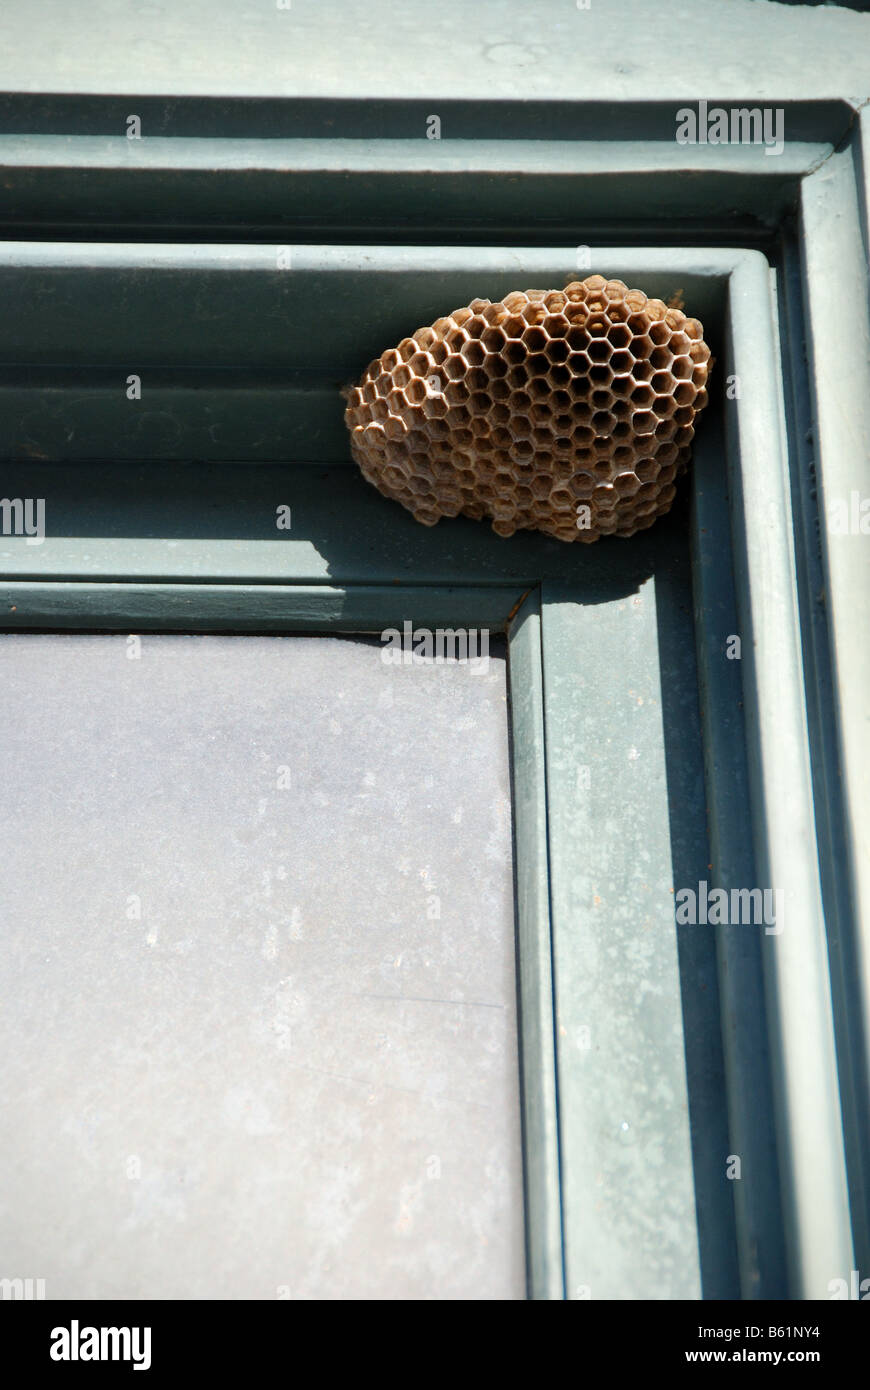 Combs Of A Wasp Nest Stock Photos & Combs Of A Wasp Nest Stock ...